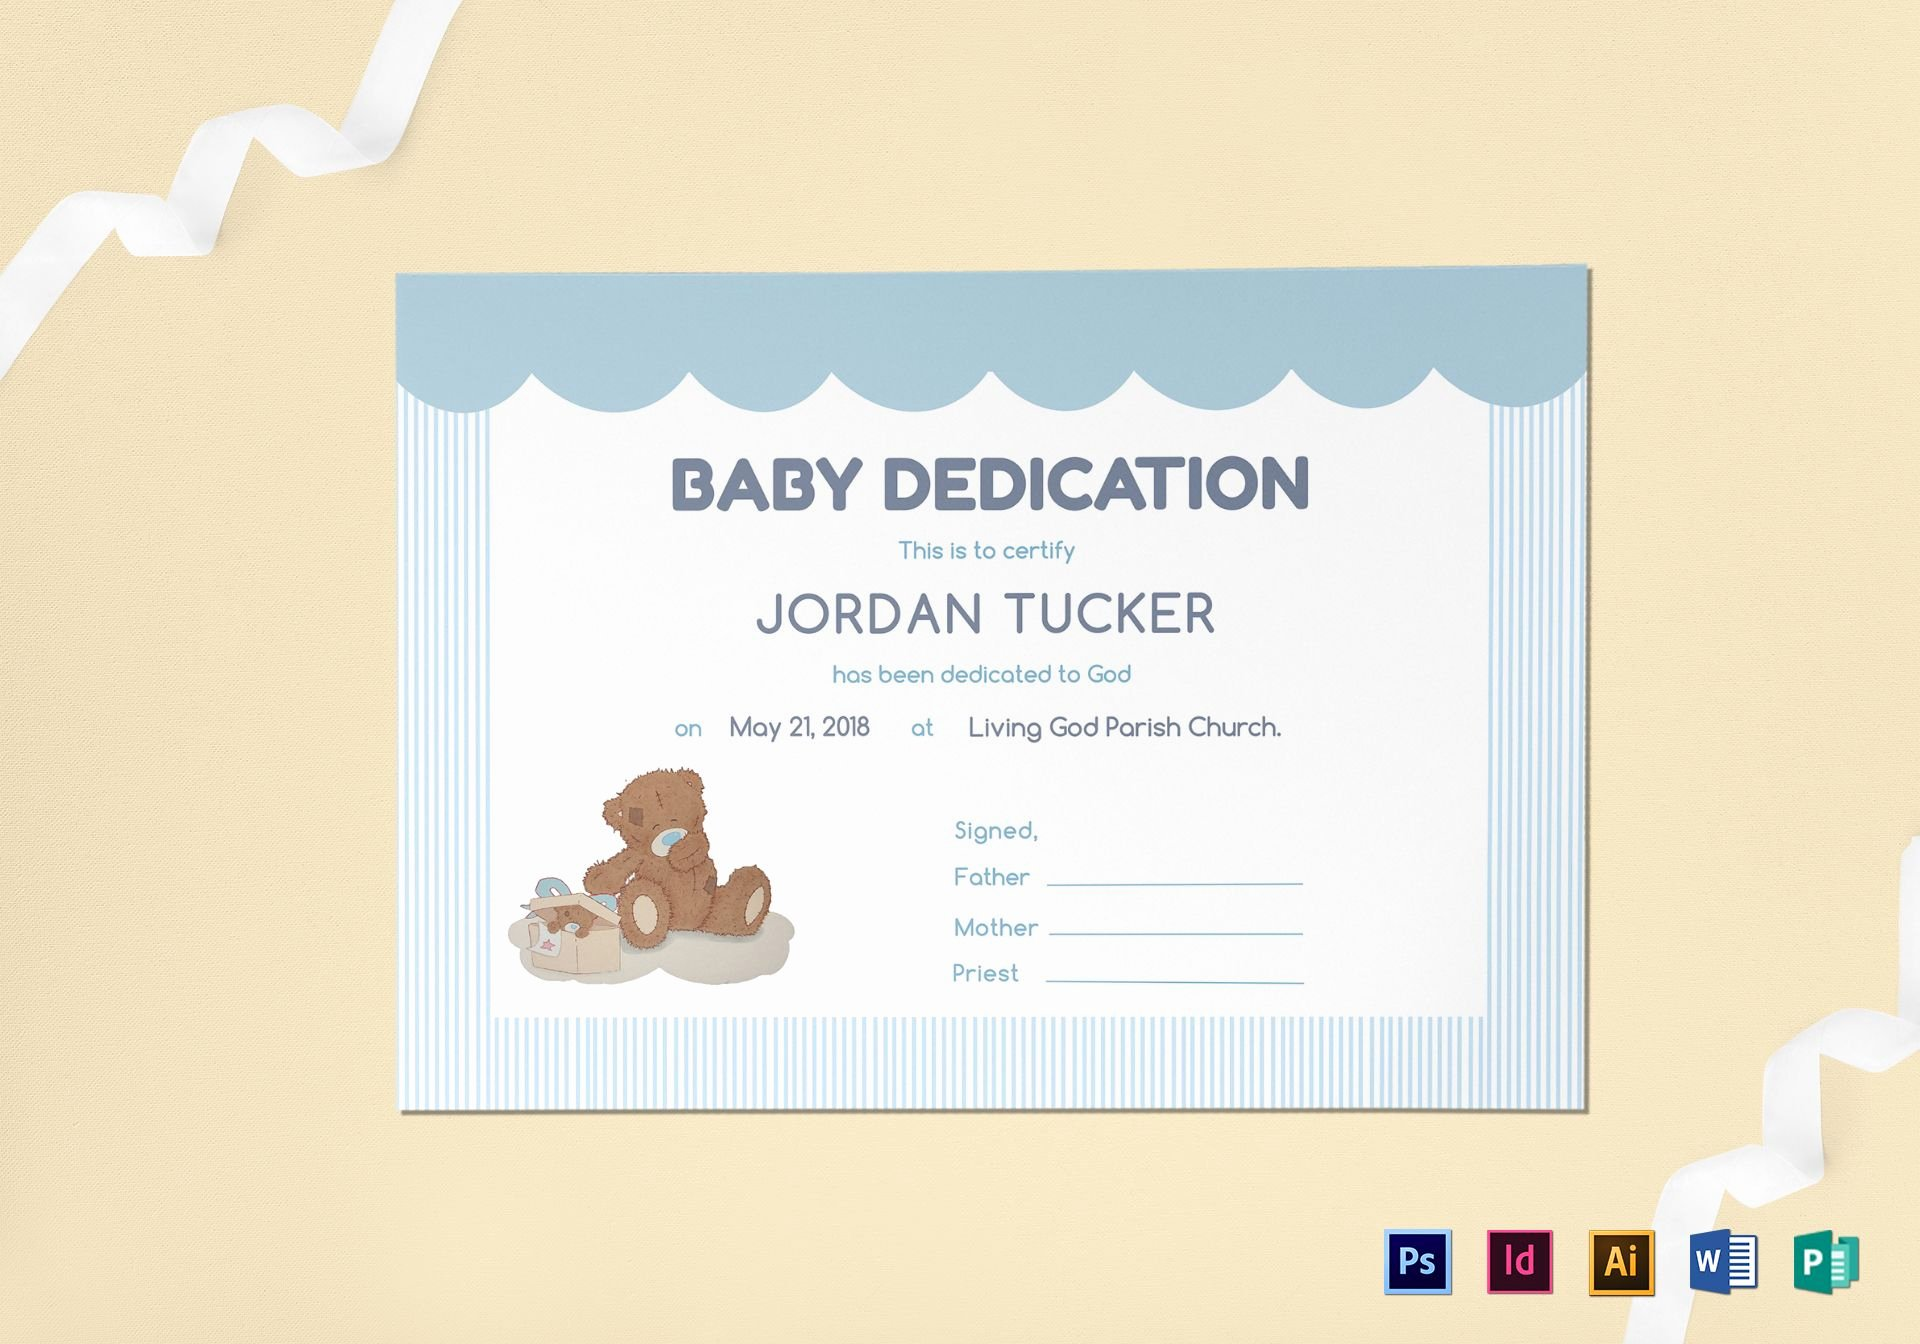 Child Dedication Certificate Editable Unique Baby Dedication Certificate Design Template In Psd Word